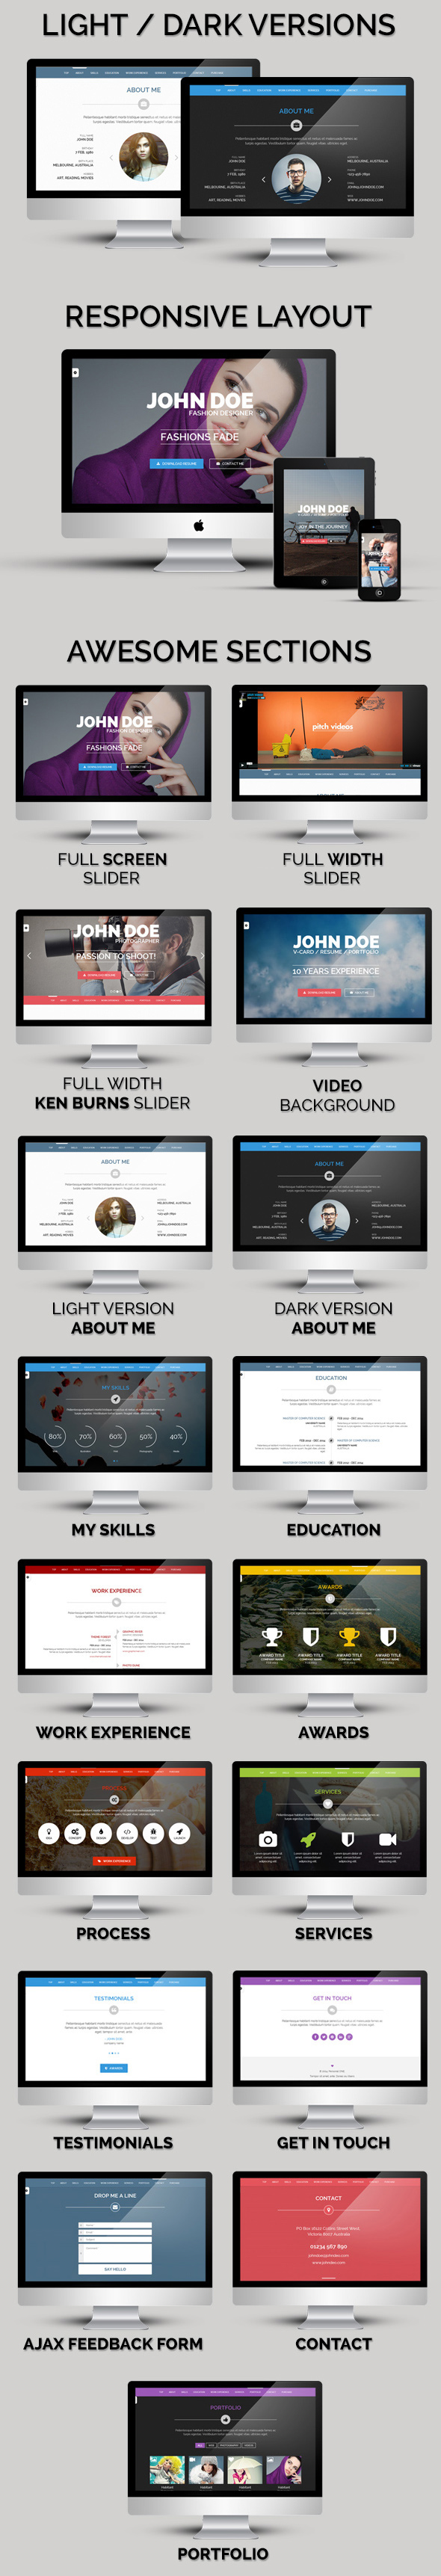 Personal One is a clean, modern and Professional VCard / Resume / Personal Portfolio WordPress T ...